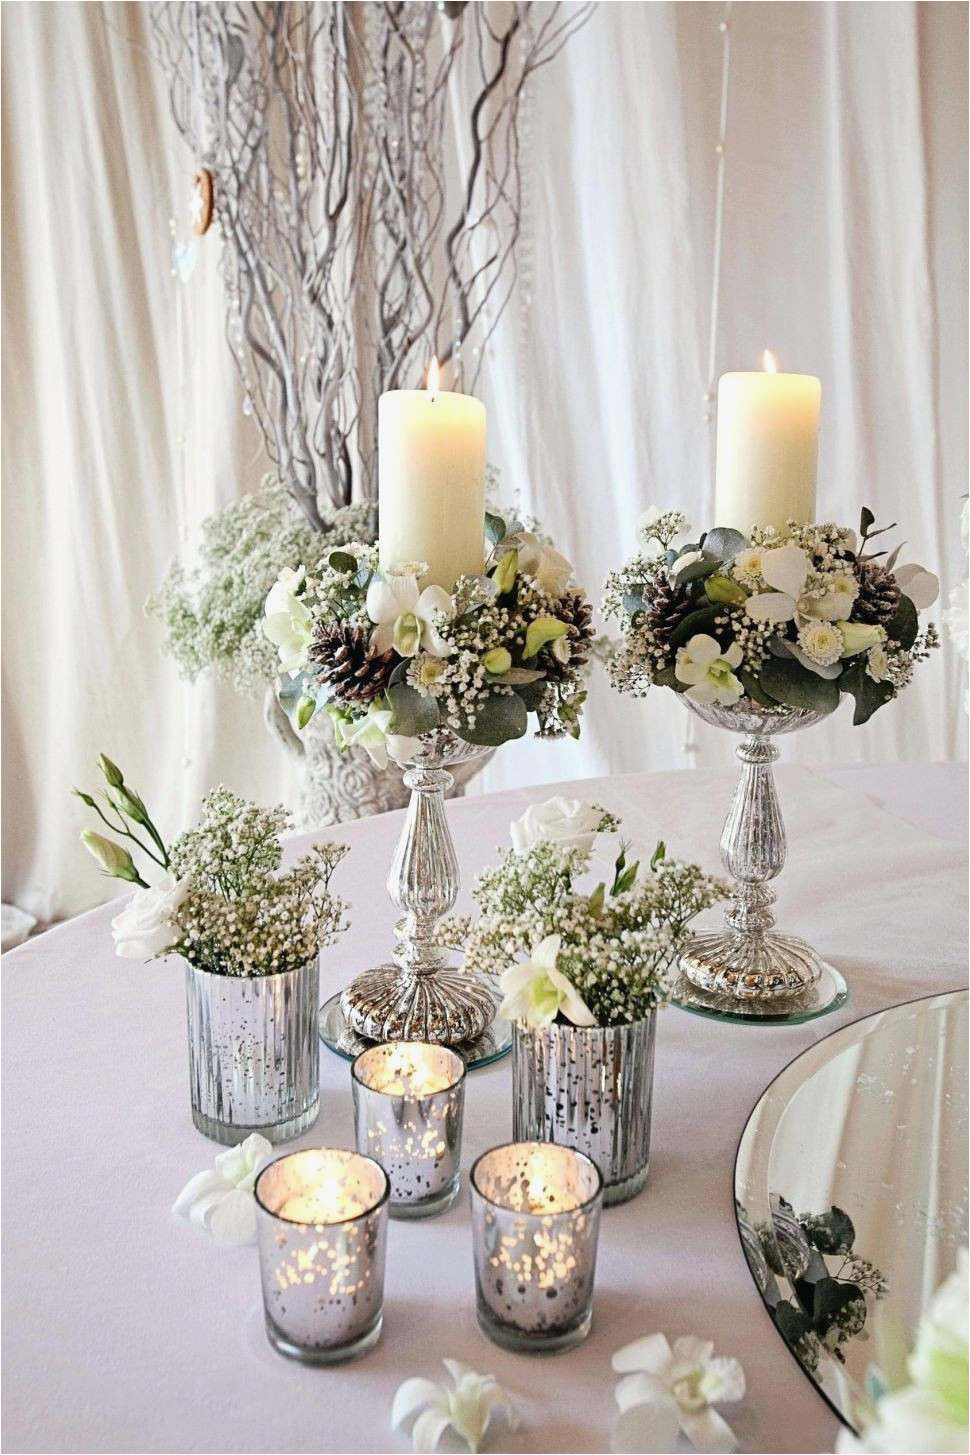 eiffel tower vases of 28 cool wedding reception decoration ideas trending best wedding with cool living room vases wholesale new h vases big tall i 0d for cheap design wedding